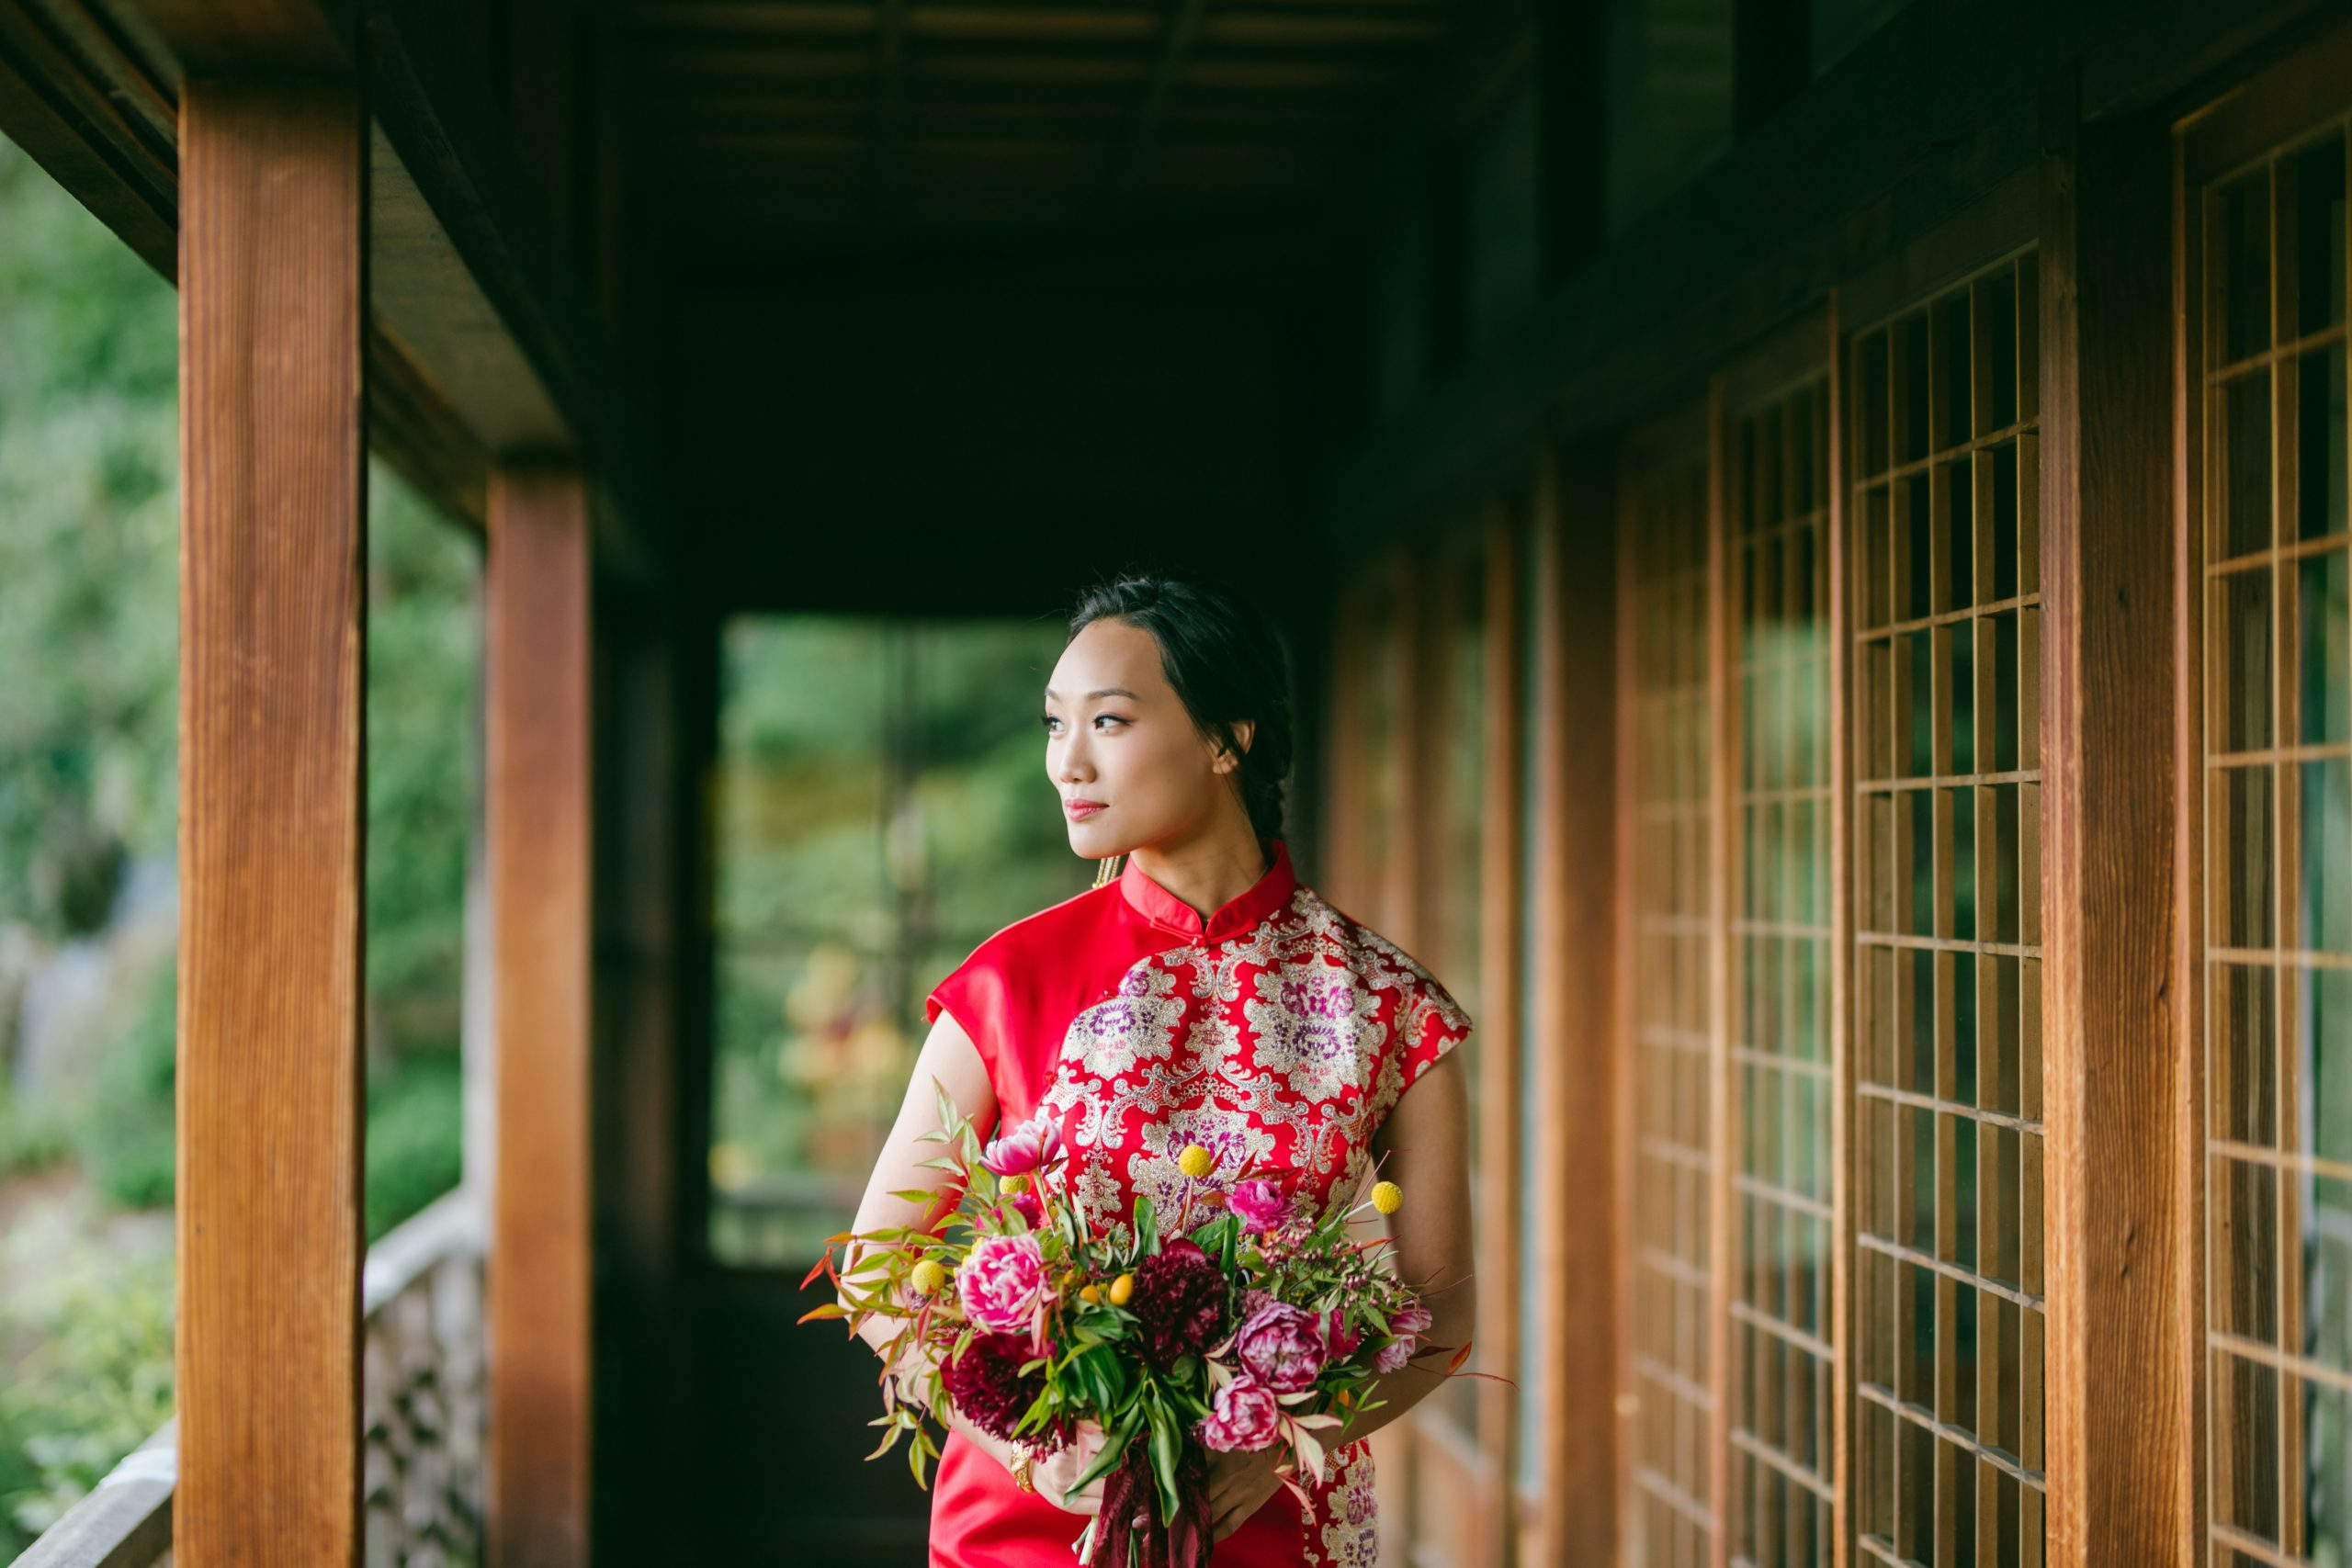 chinese wedding traditions red wedding dress bride